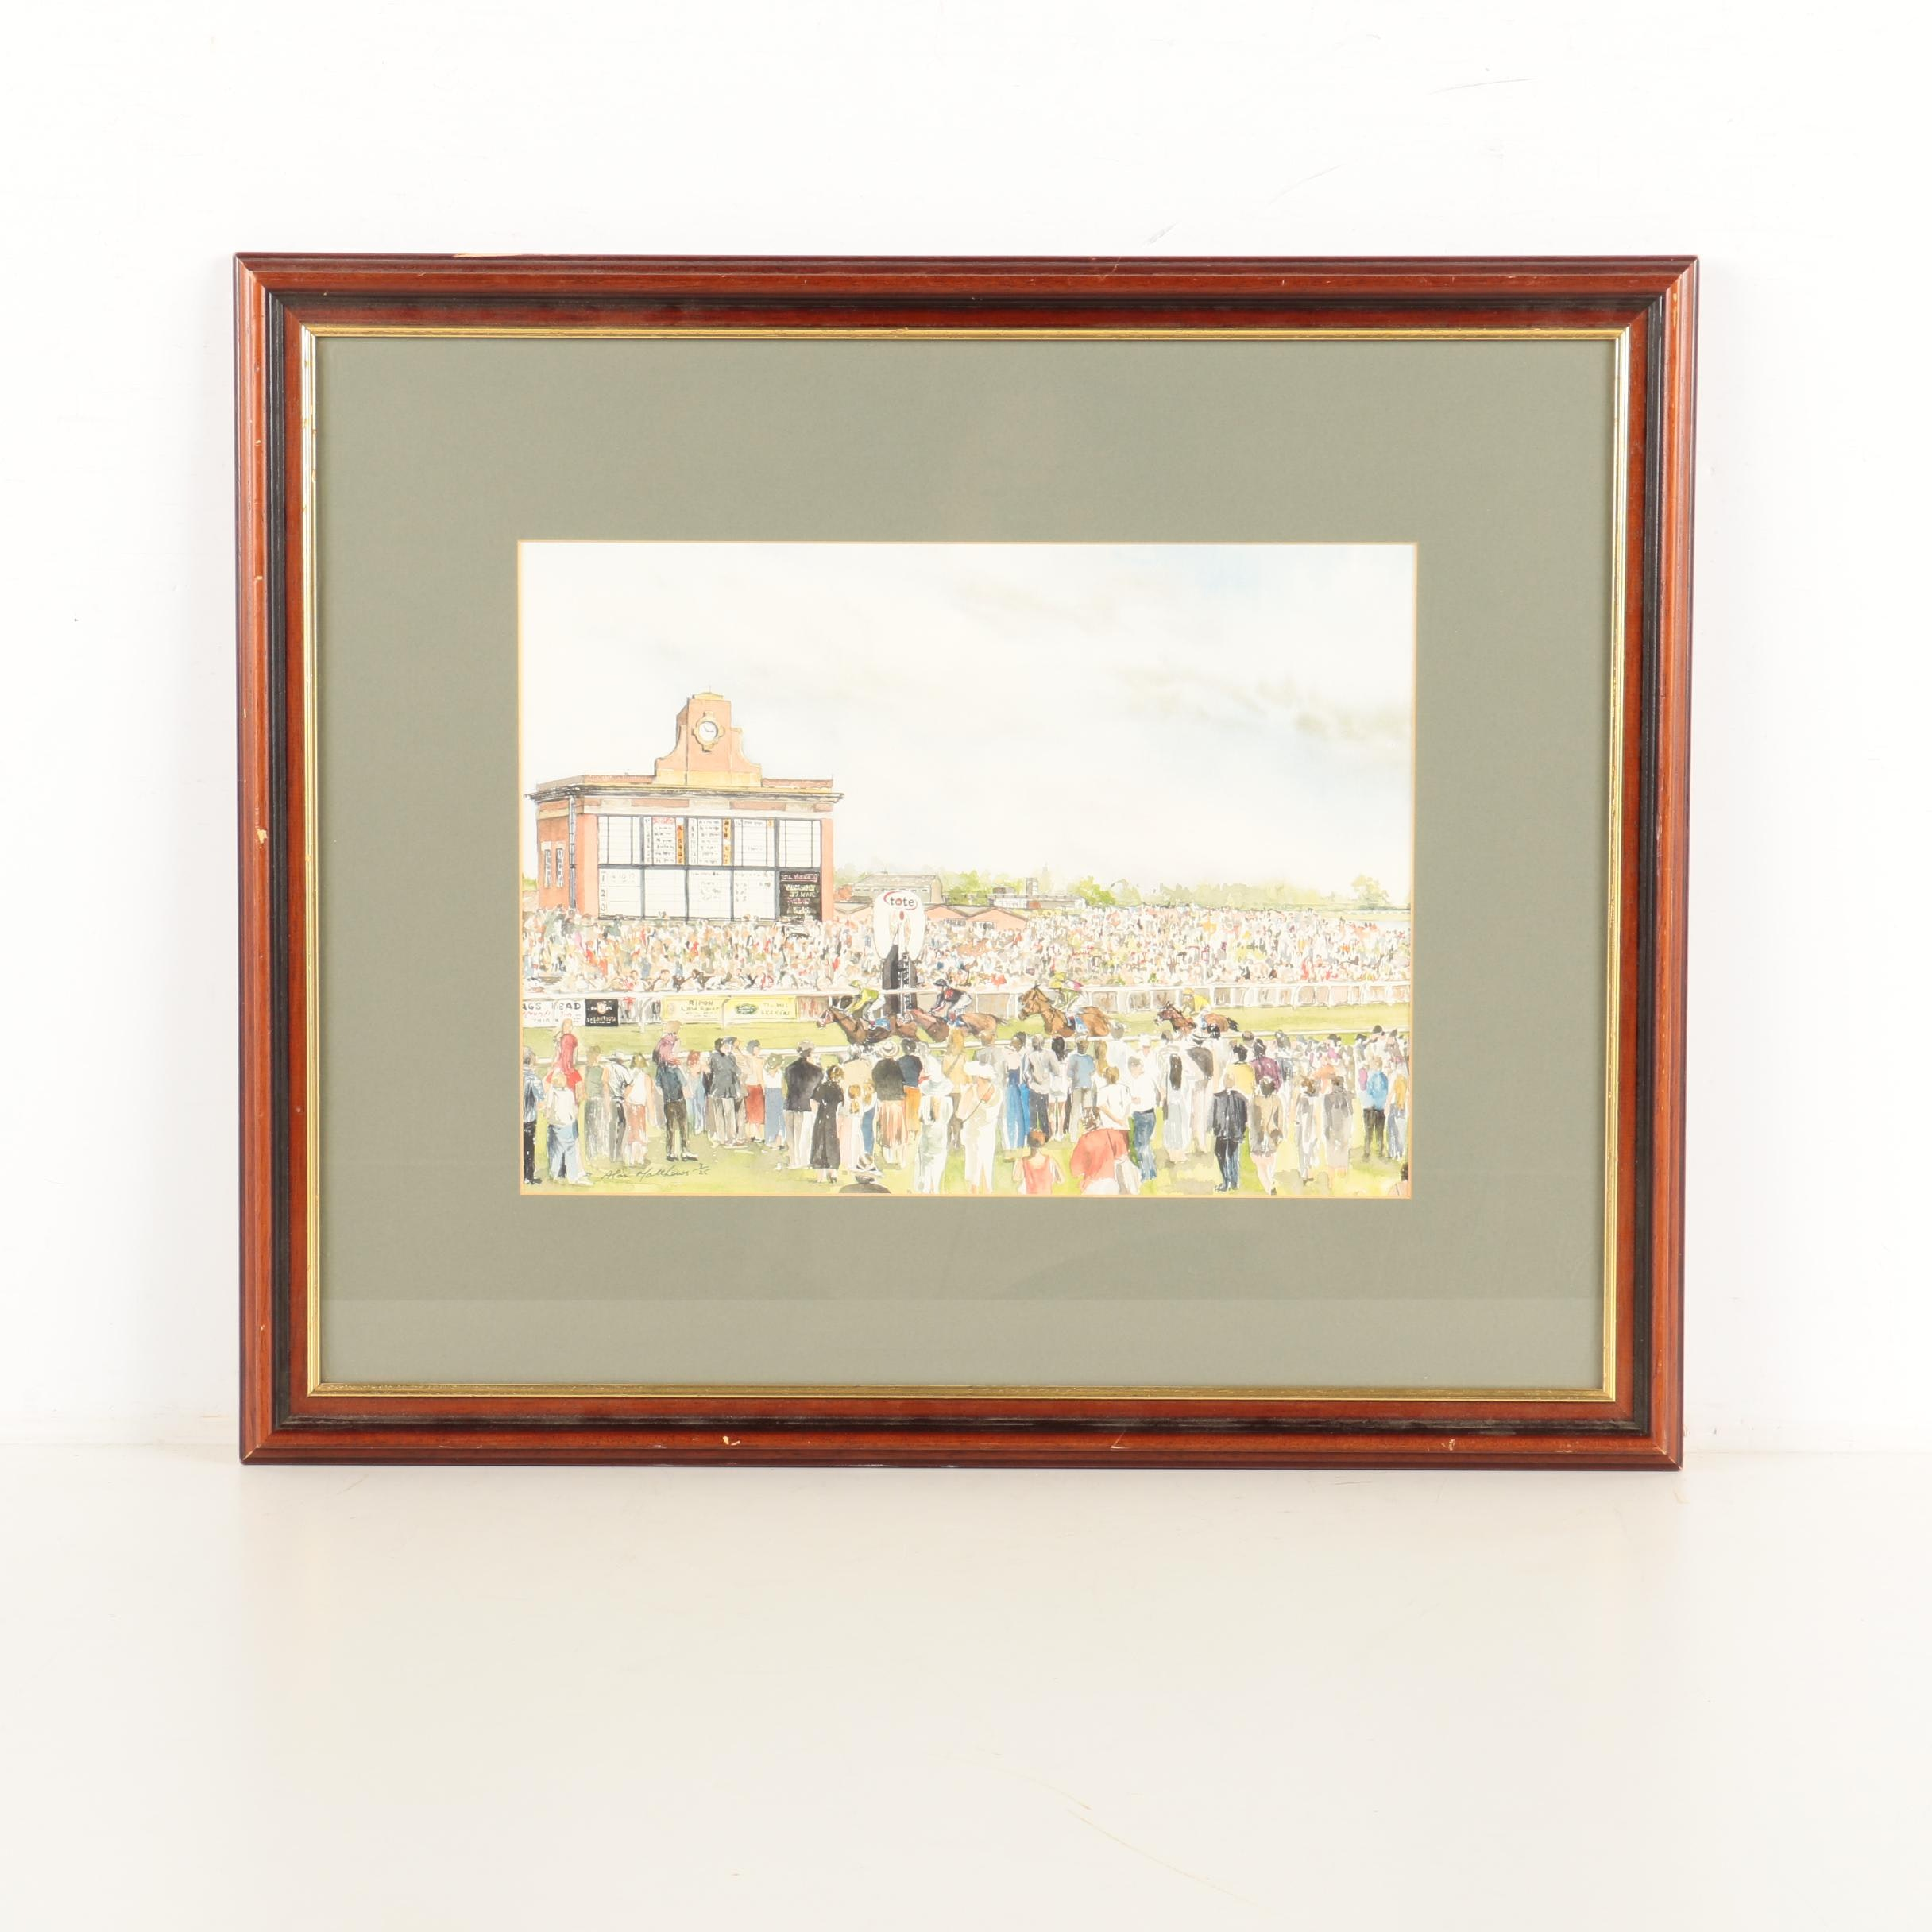 Alan Matthews Limited Edition Giclee on Paper of a Horse Race